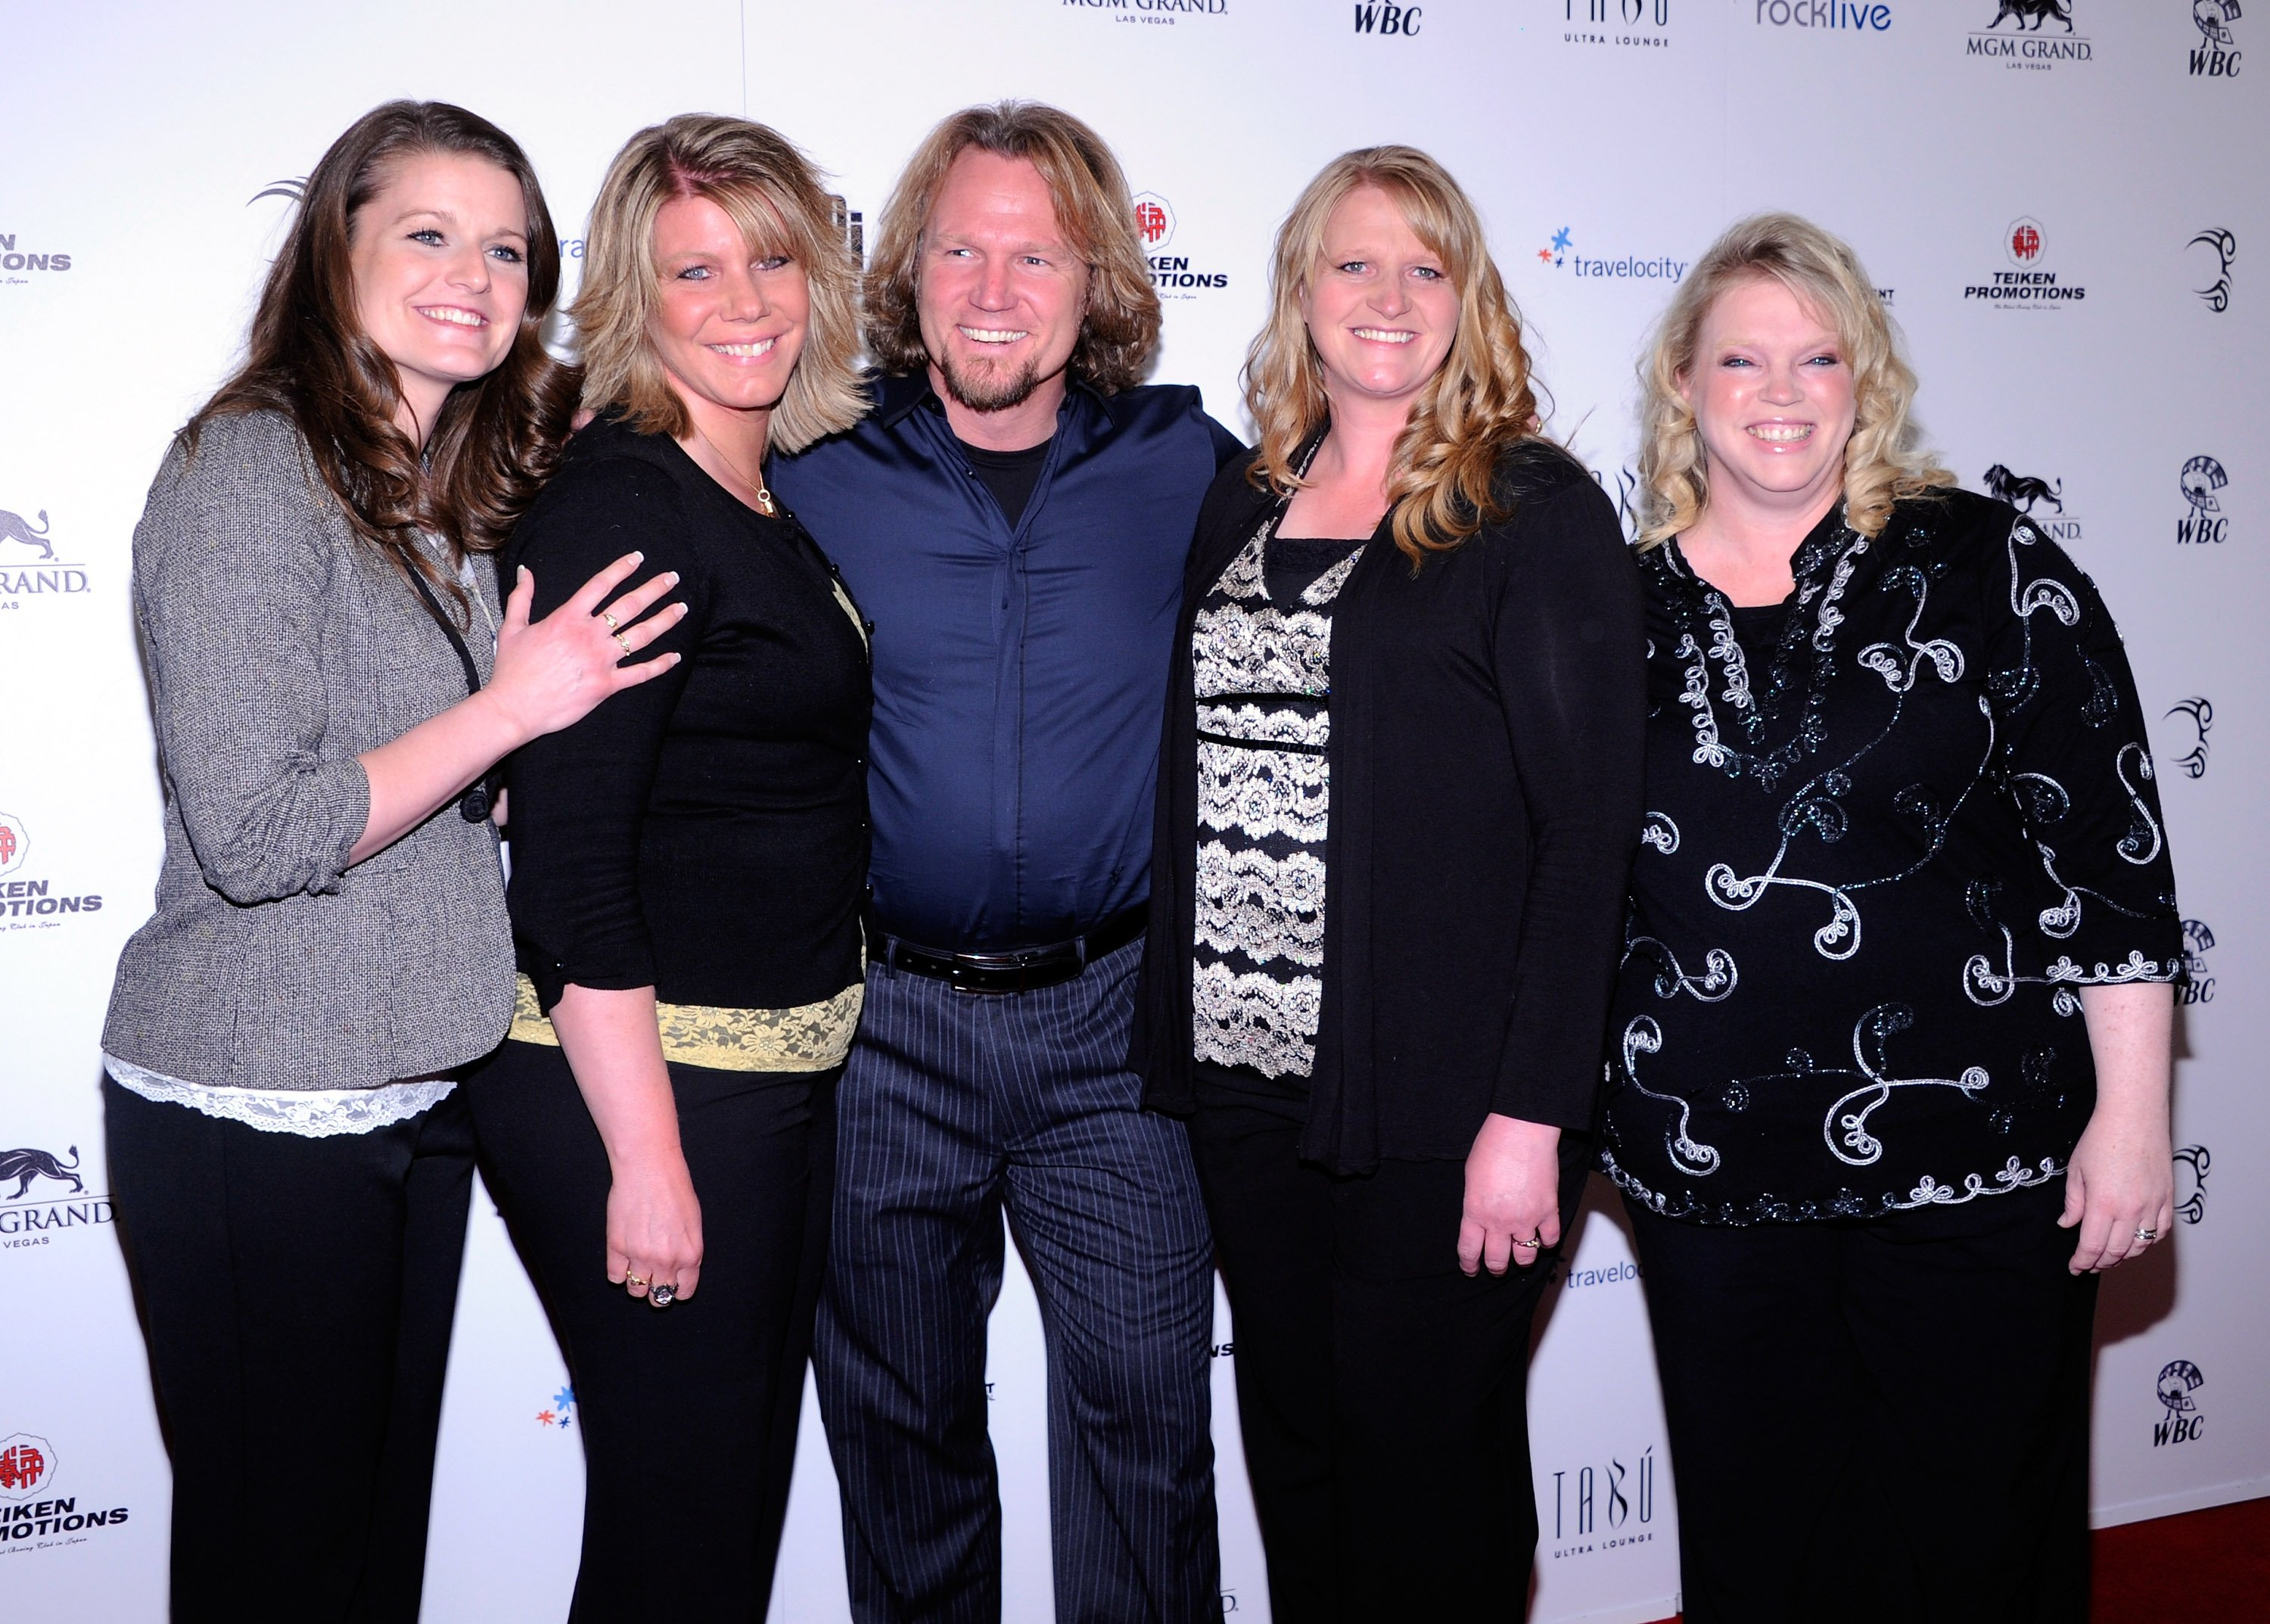 """Robyn Brown, Meri Brown, Kody Brown, Christine Brown and Janelle Brown from """"Sister Wives"""" arrive at the grand opening """"Mike Tyson: Undisputed Truth - Live on Stage"""" on April 14, 2012, in Las Vegas, Nevada. 